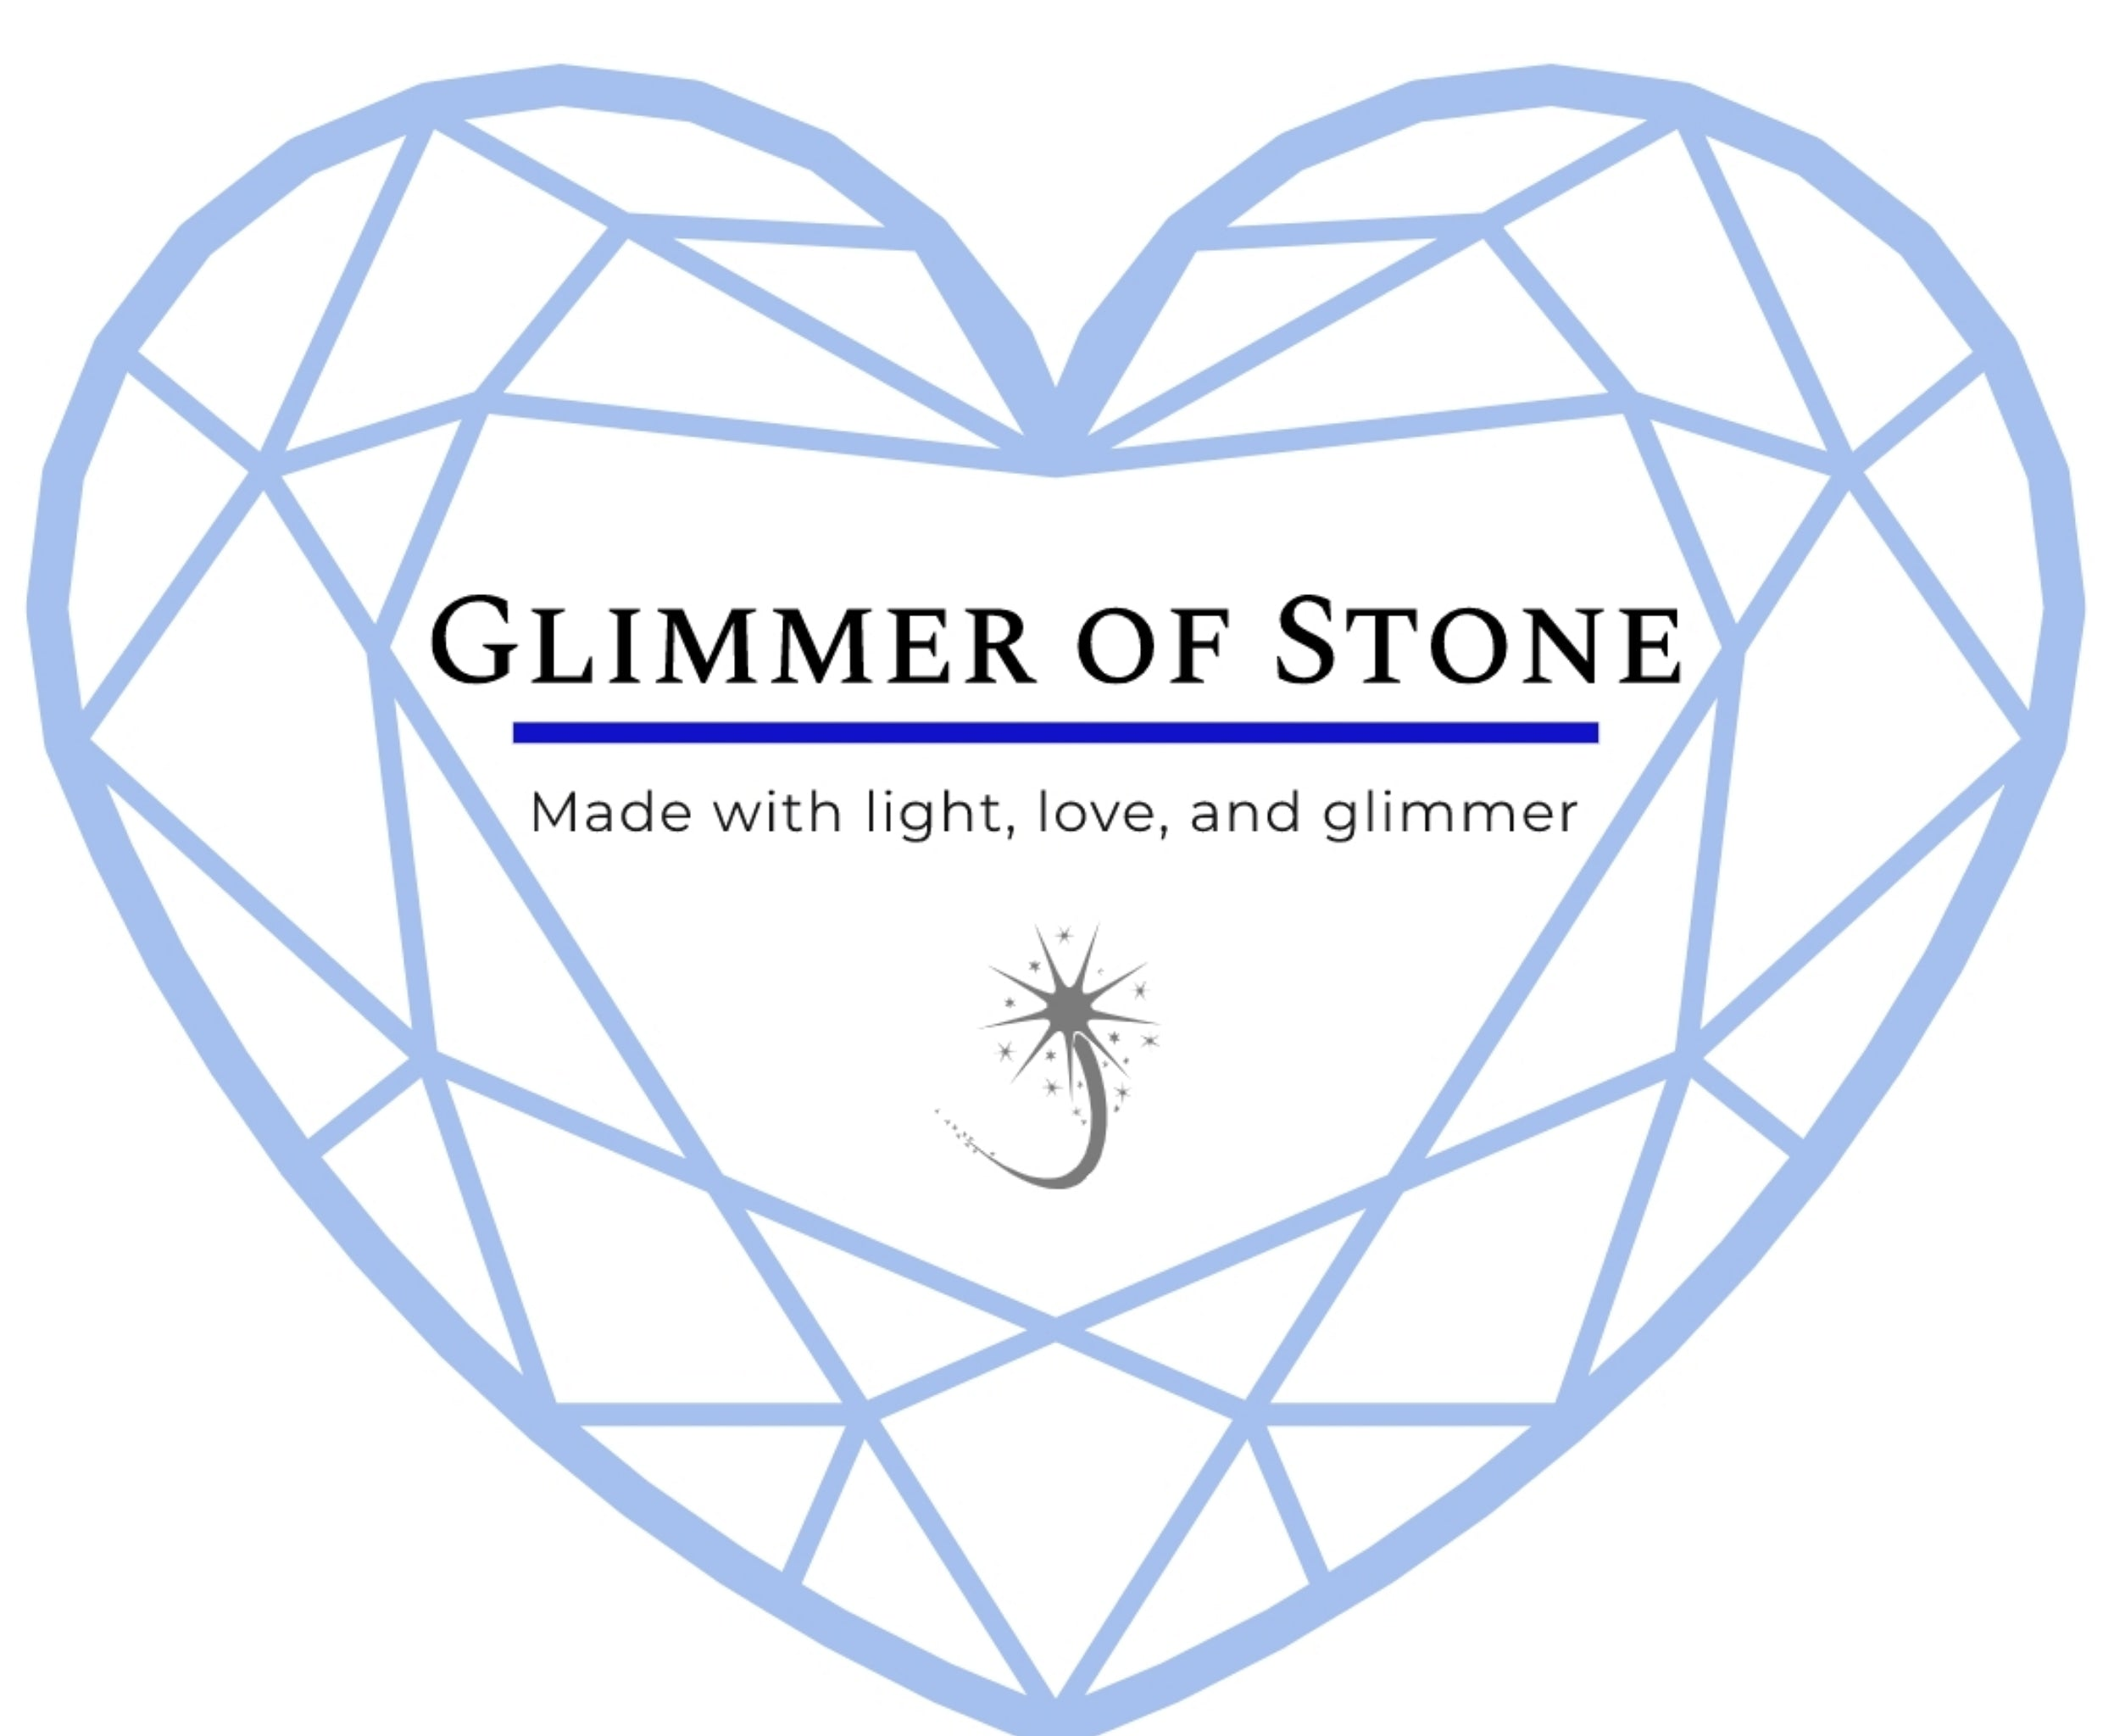 Glimmer of Stone